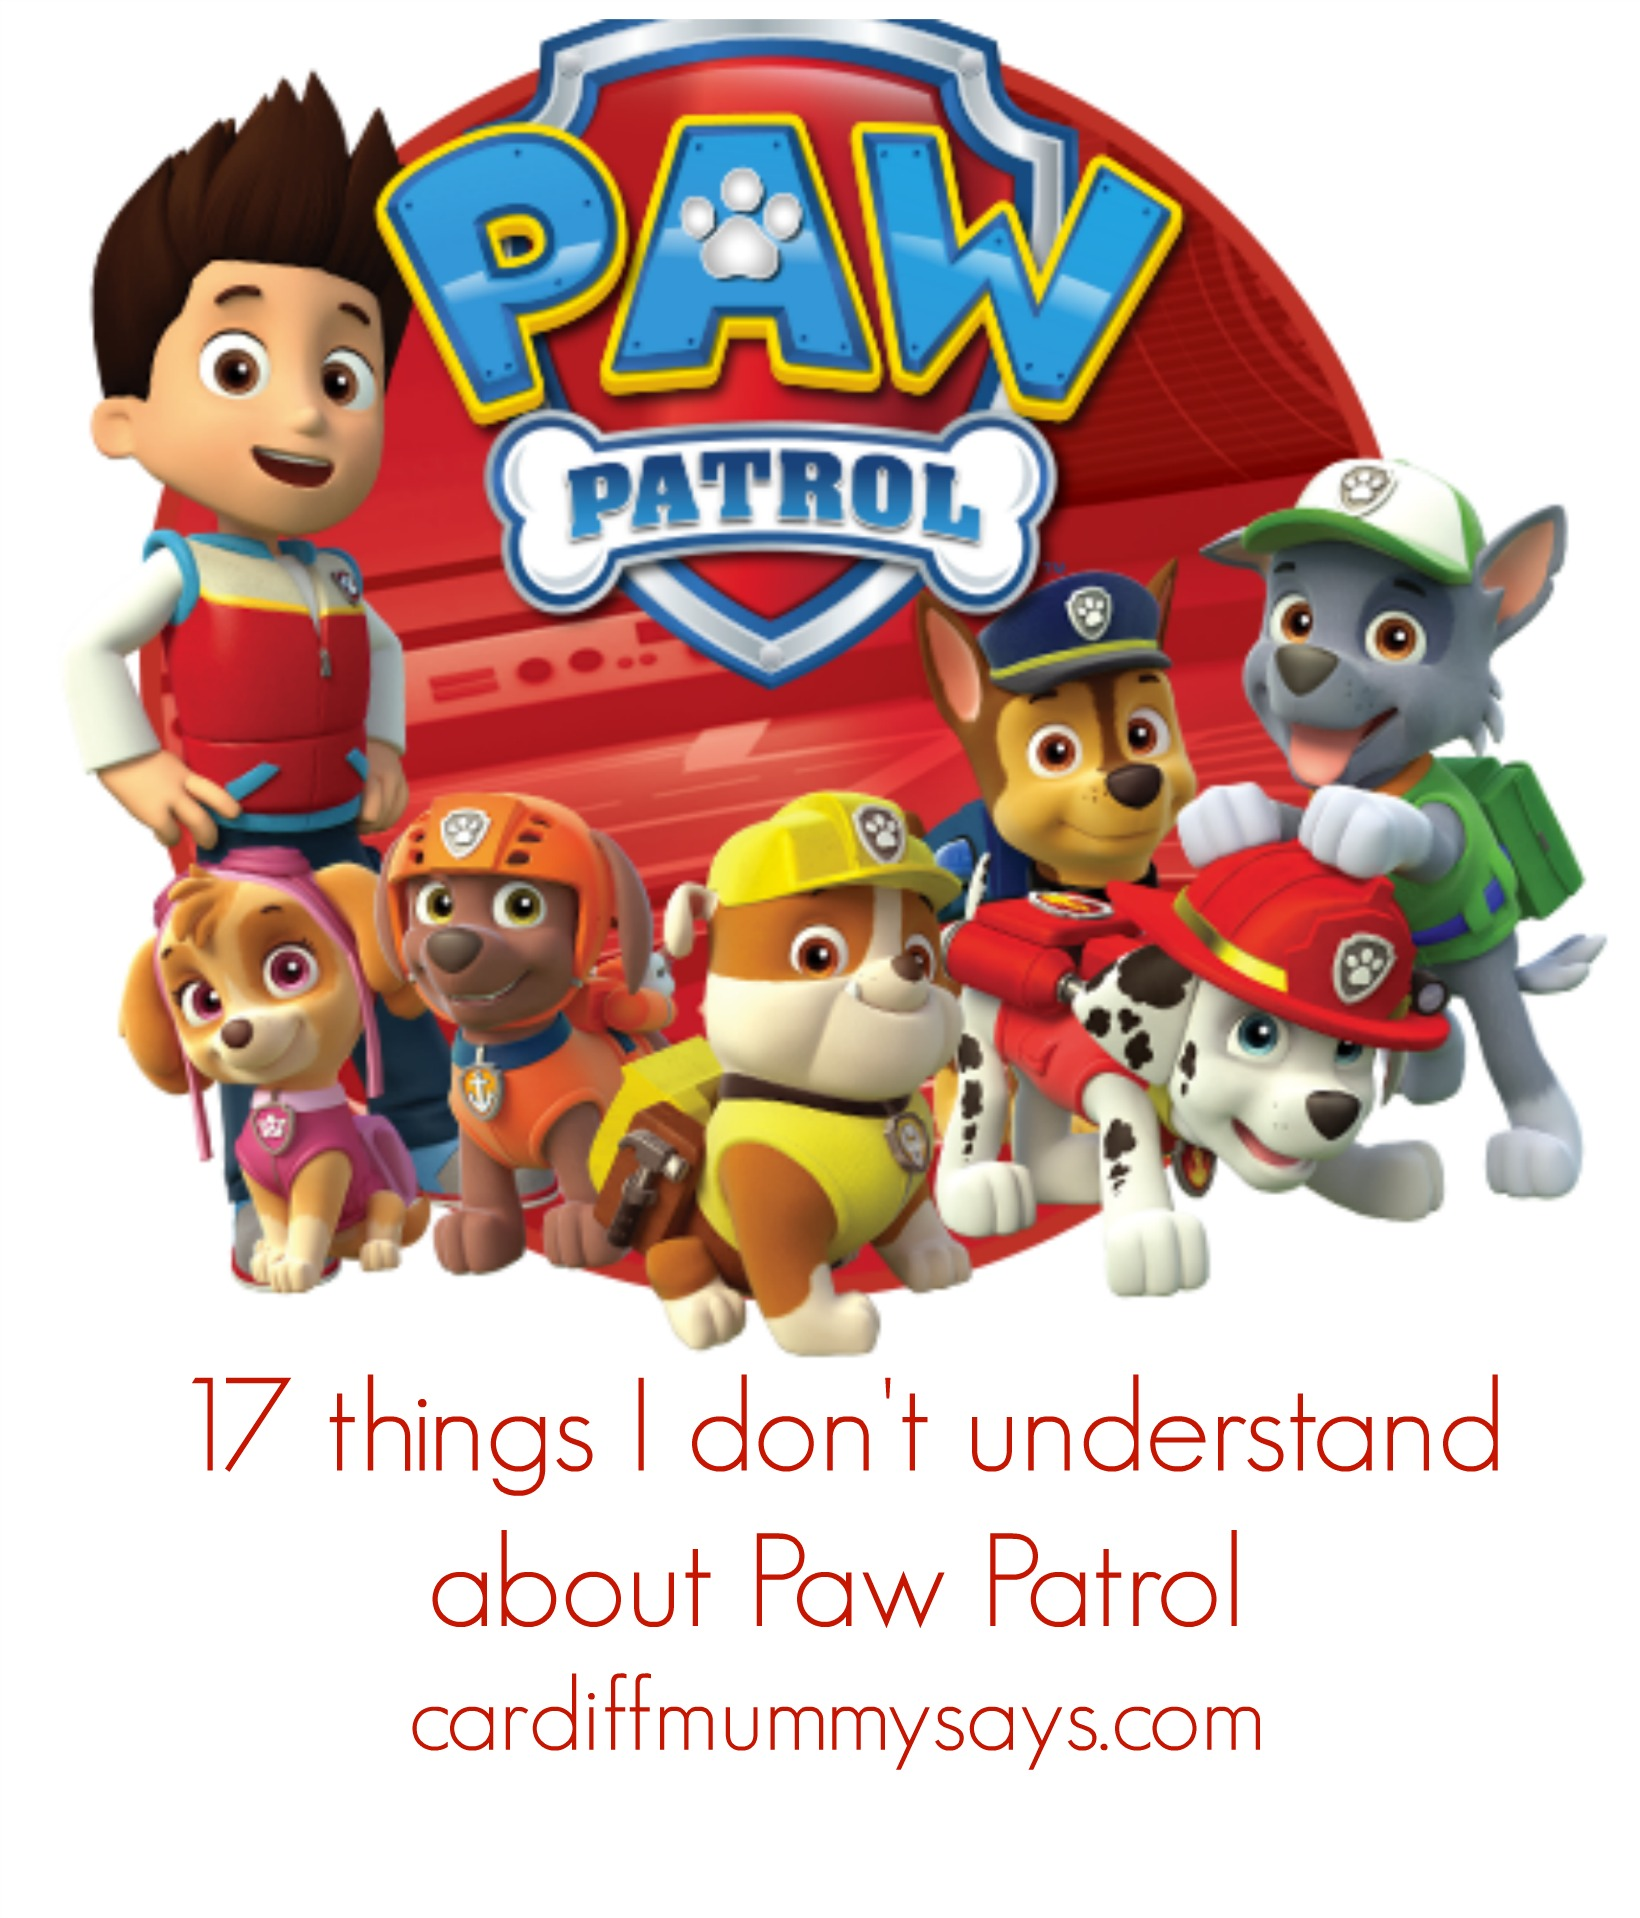 Paw Patrol with text